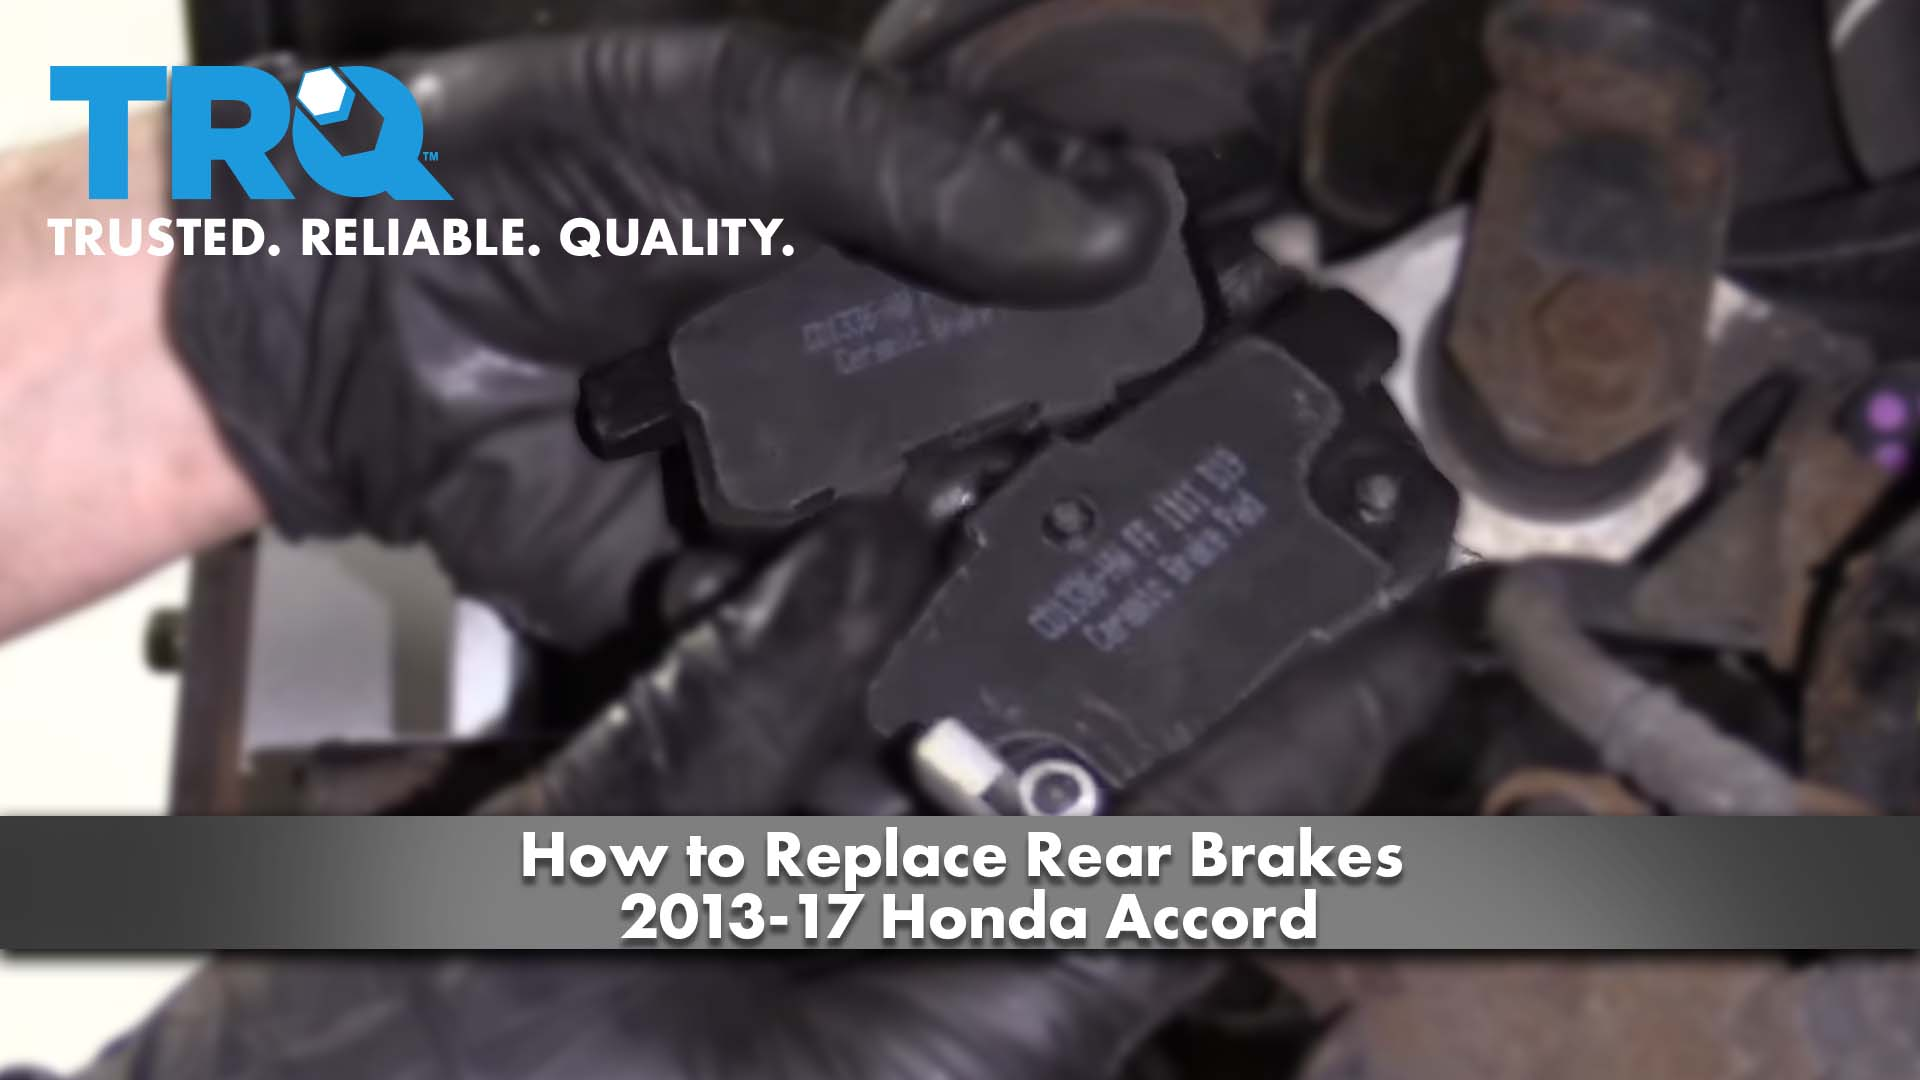 How to Replace Rear Brakes 2013-17 Honda Accord